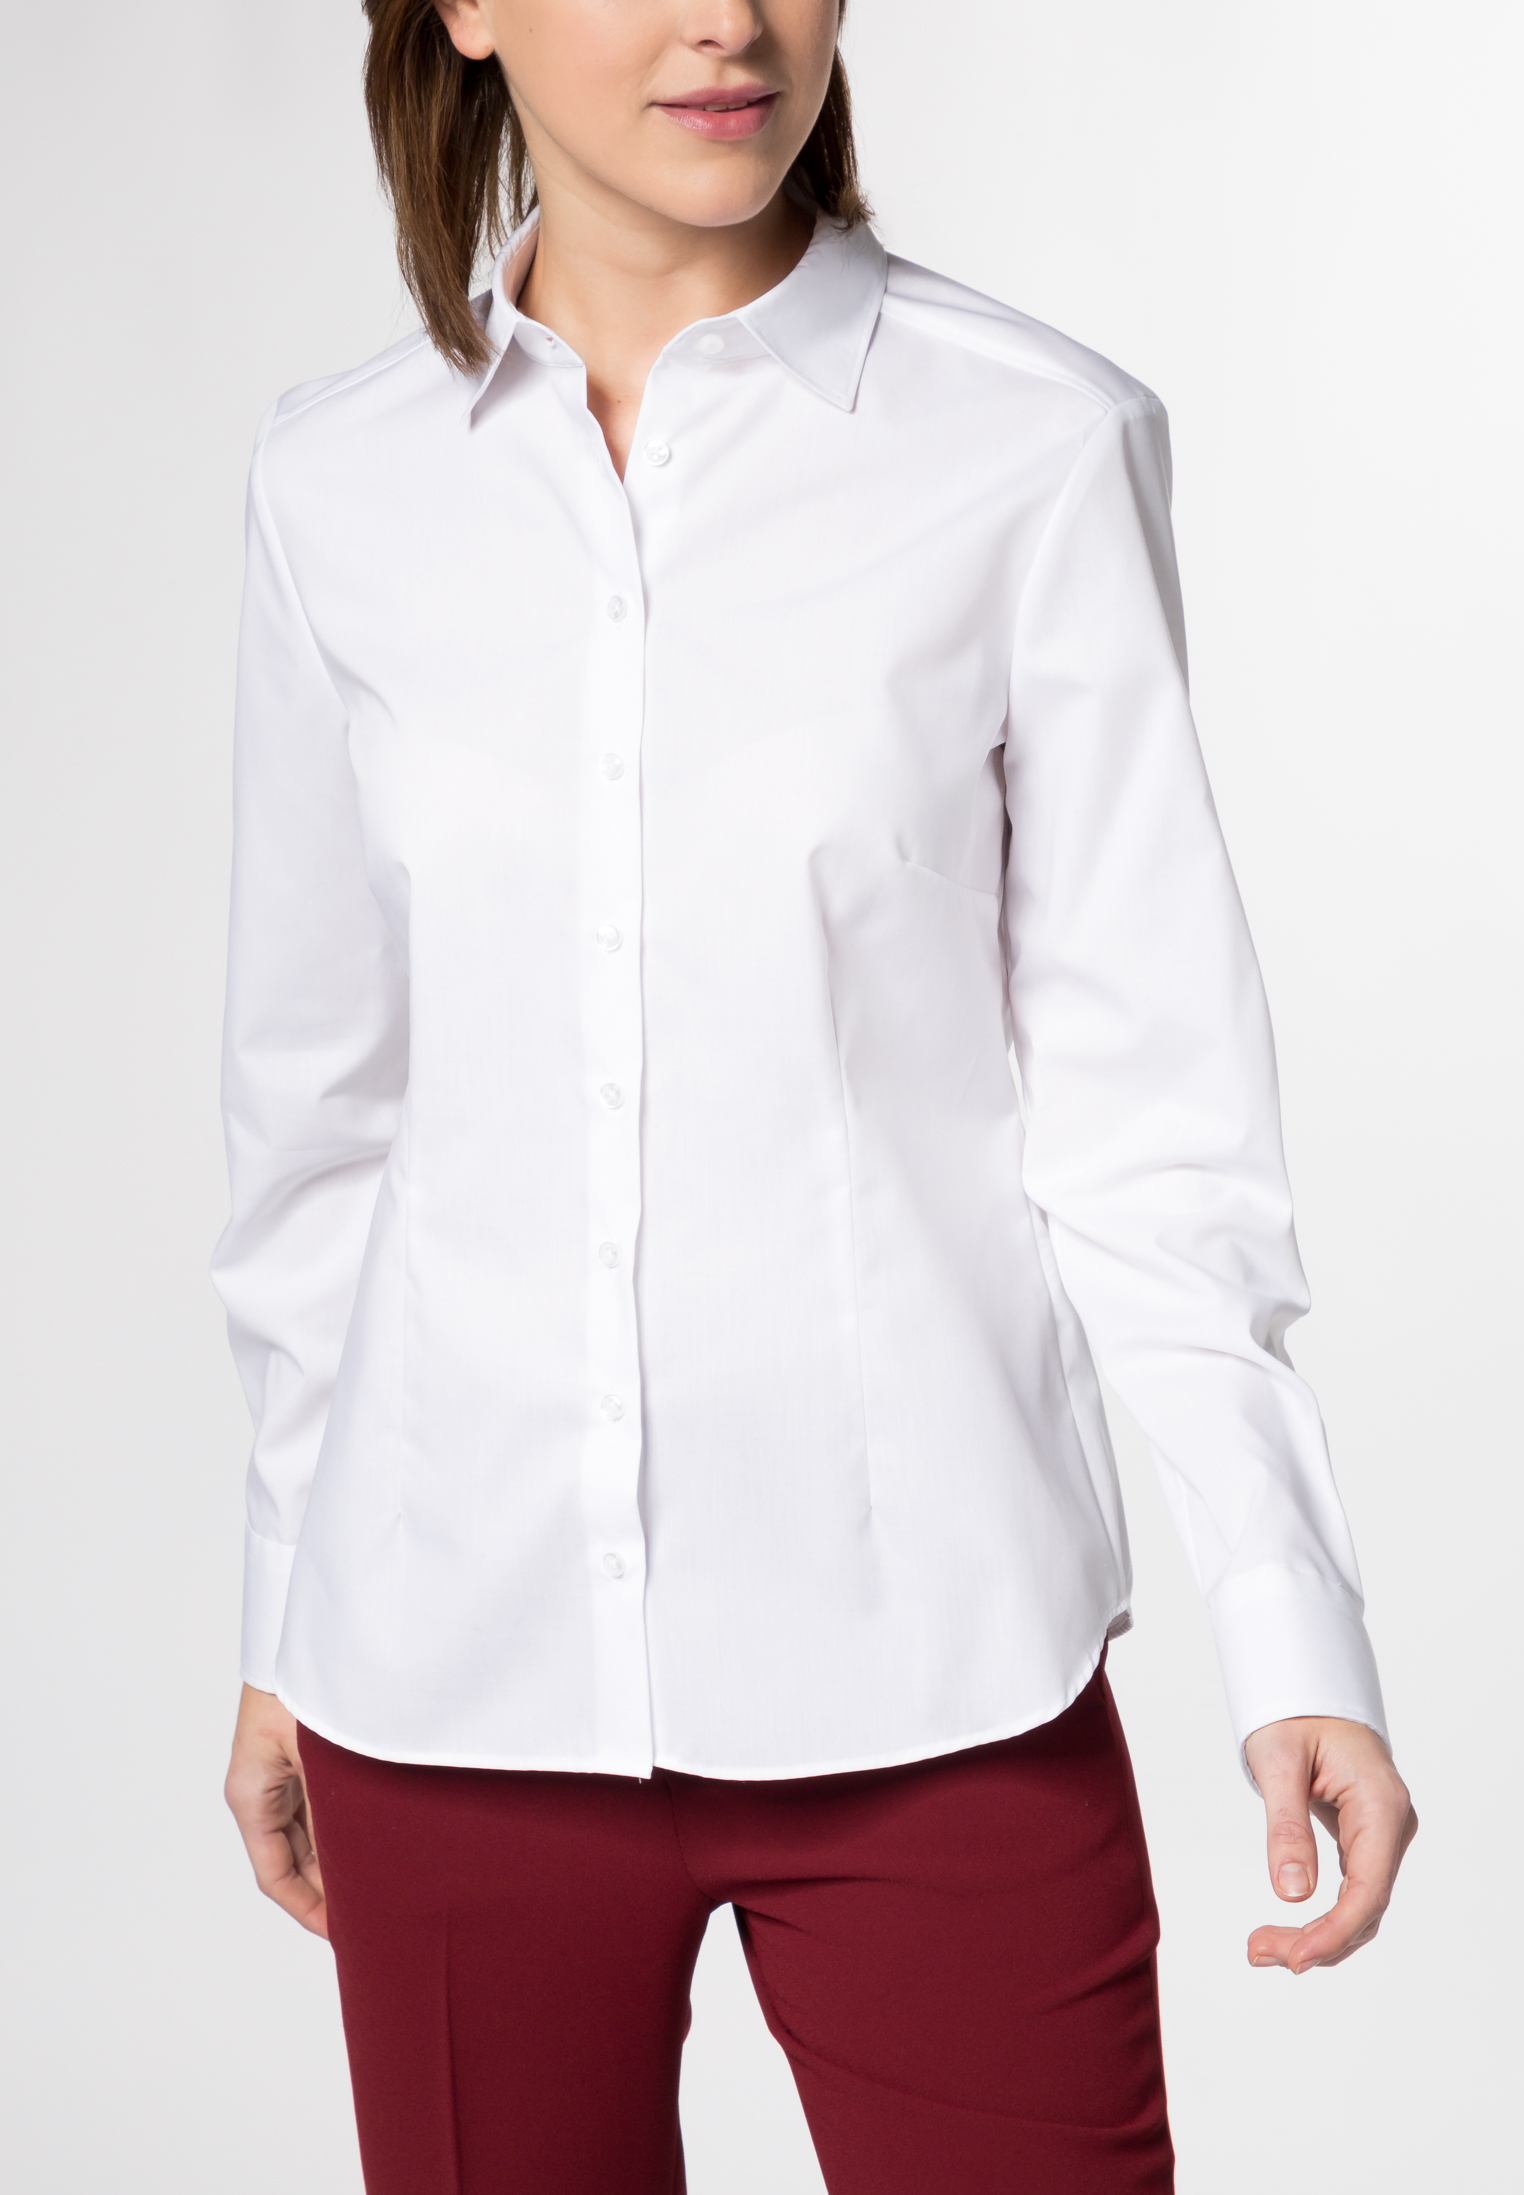 Classic style shirts can provide the simple base around which other wardrobe looks are built with the additions of jewelry, accessories, sweaters, jackets, or more elaborate bottoms. Or they can be integrated into a modern classic style that is simple, yet chic.